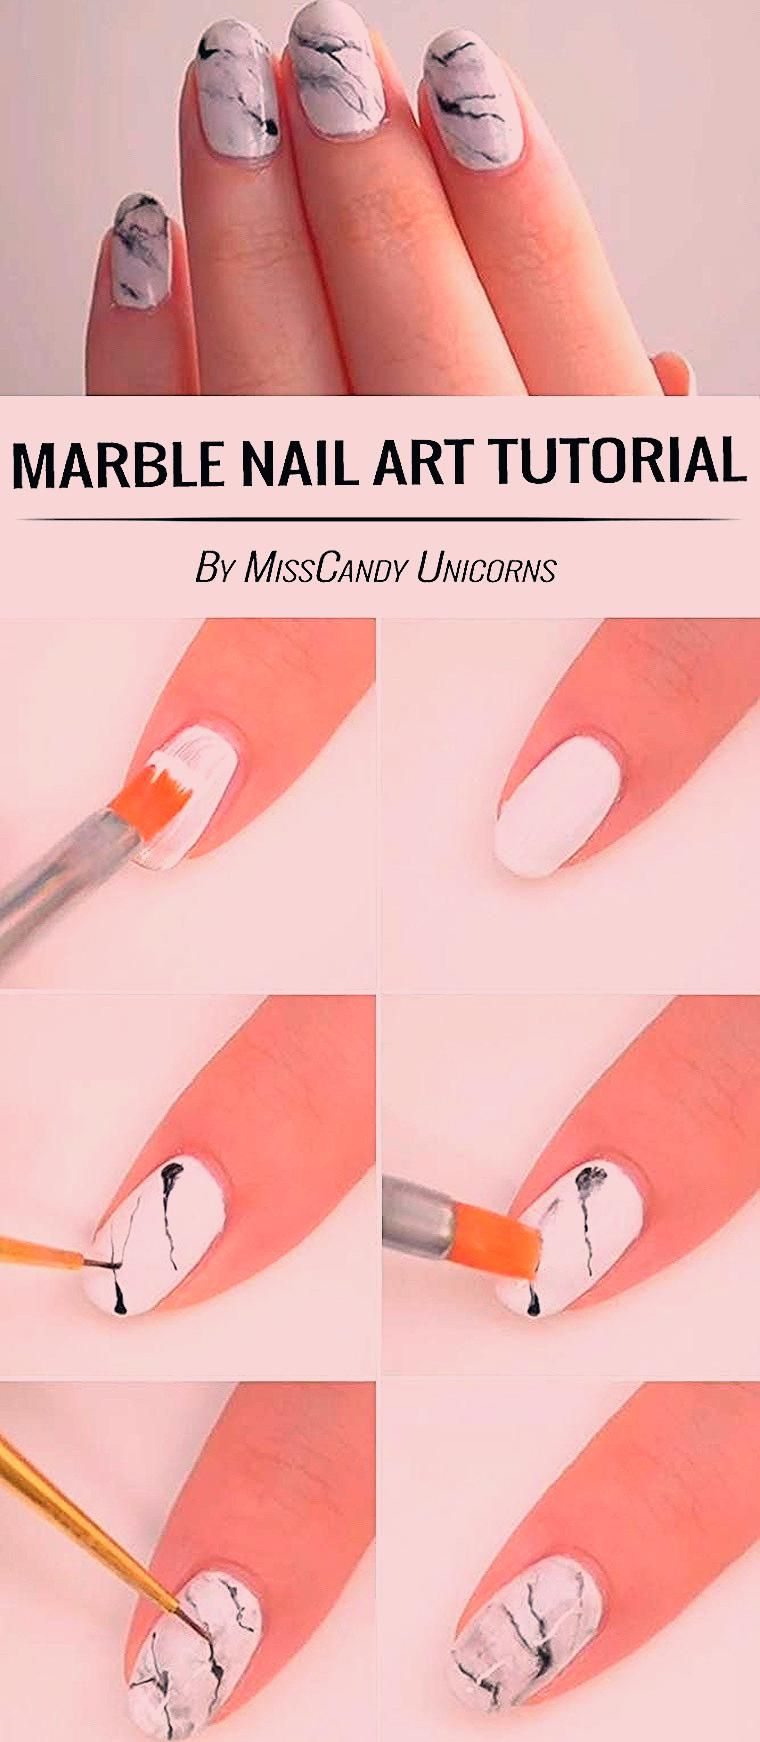 40+ Awesome Easy DIY Nail Art Ideas For Beginner #diynailart